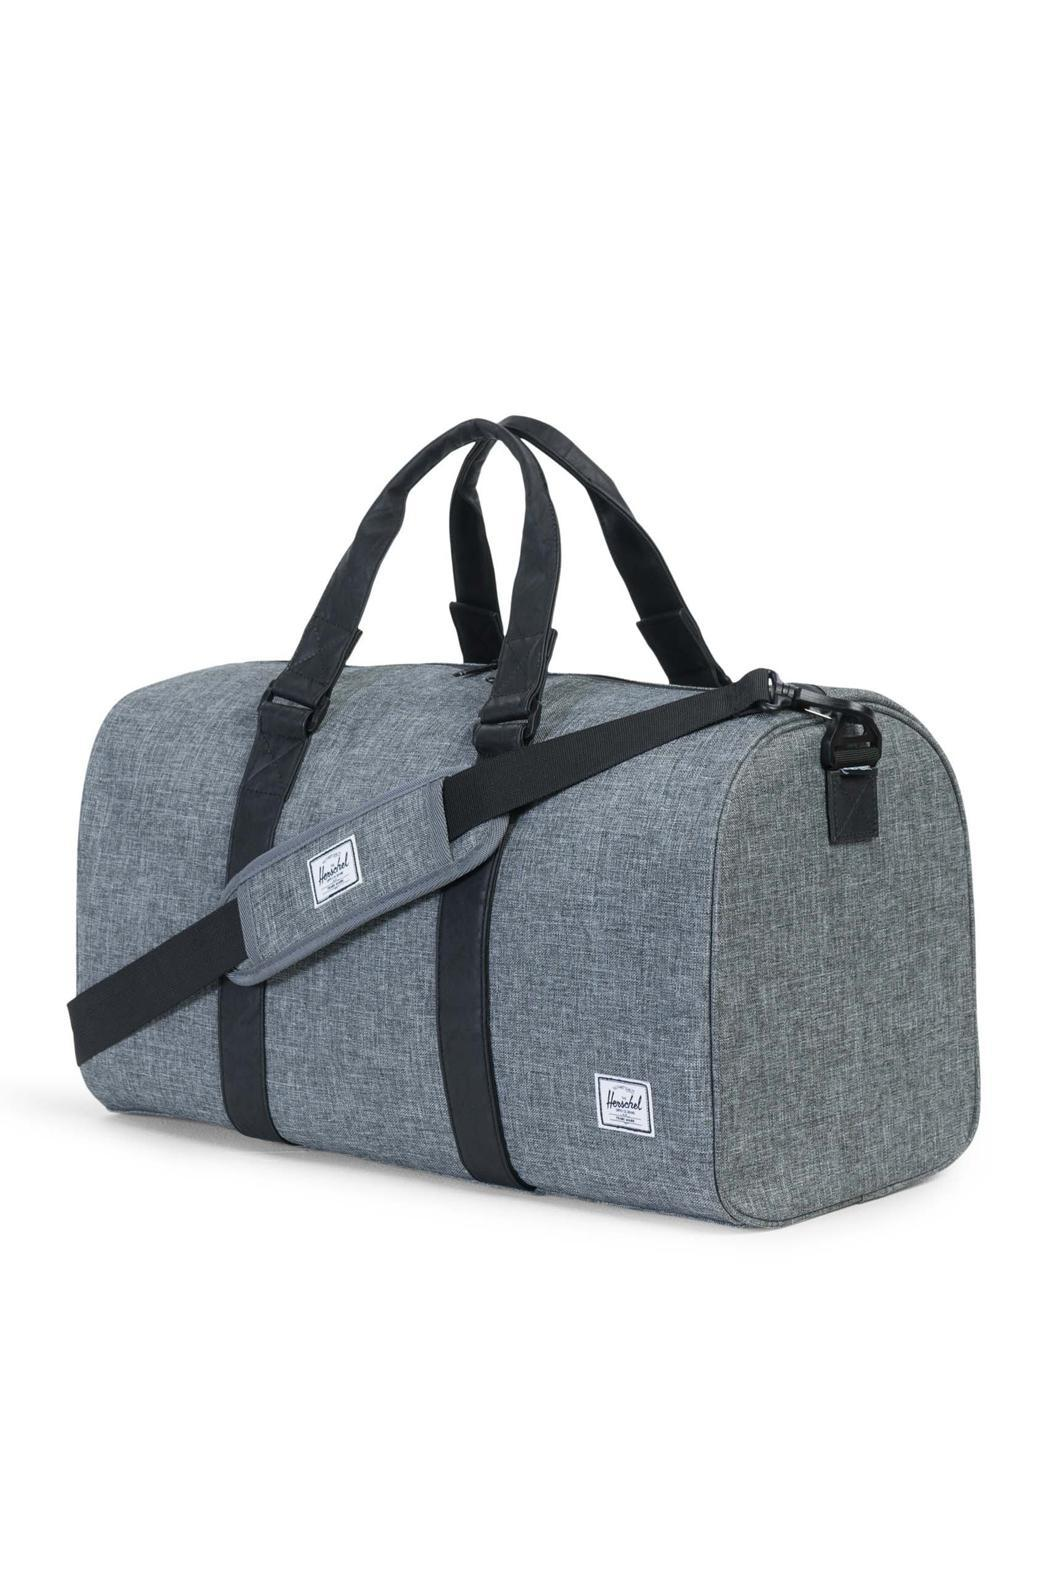 herschel supply co ravine duffle bag